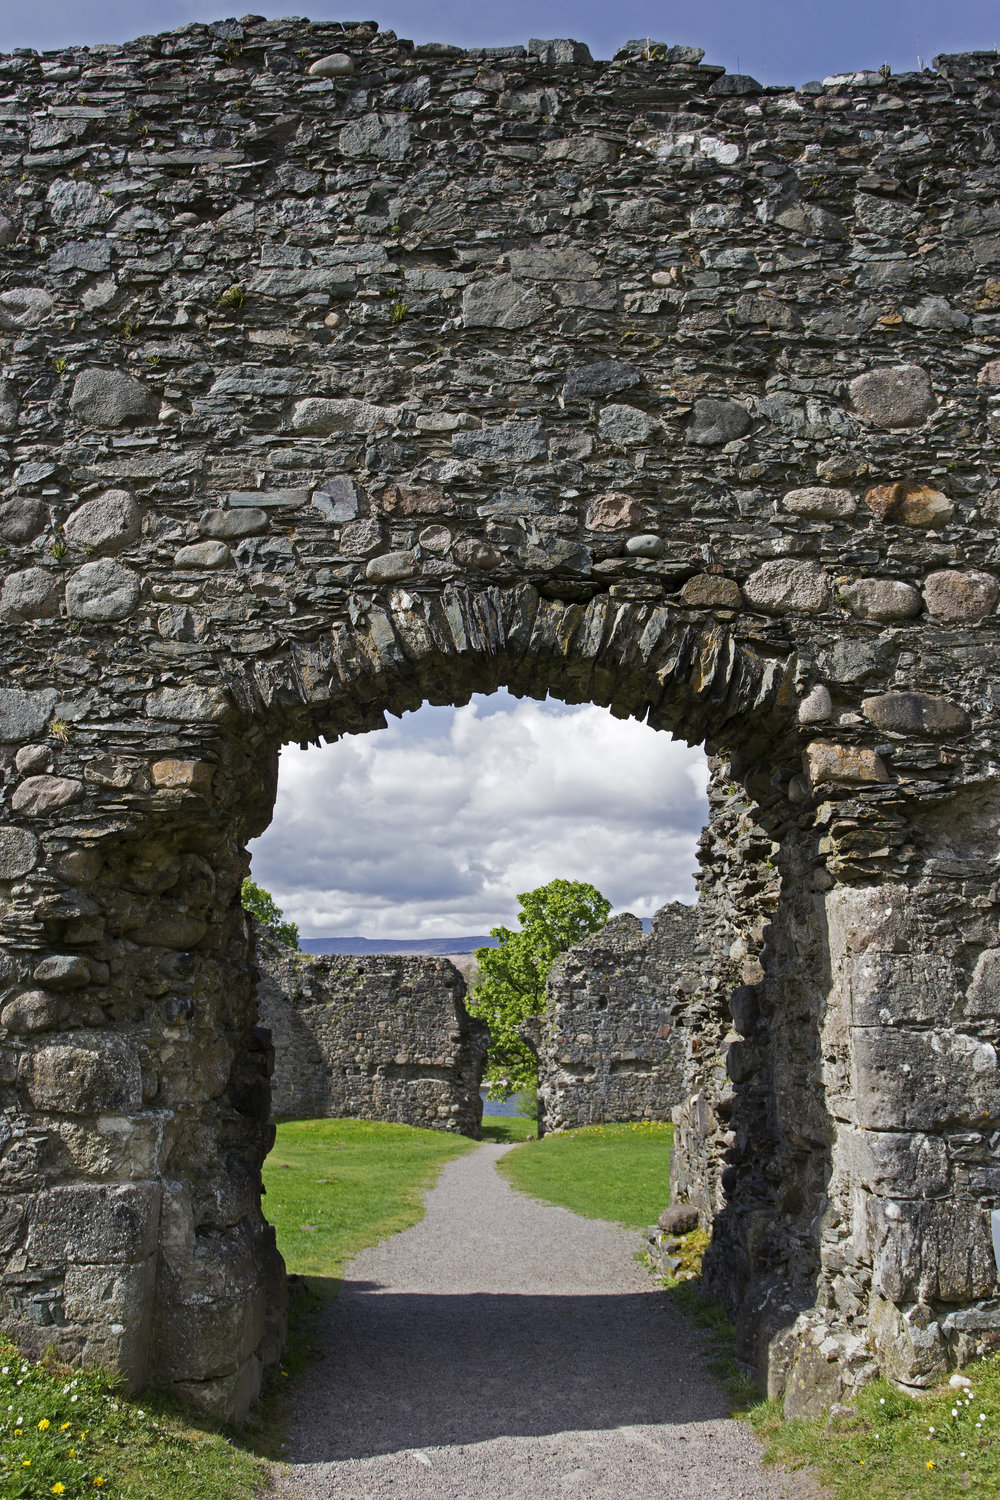 After a nice quiet night on the boat, we've mountain biked into Fort William and are exploring the old Castle ruins.